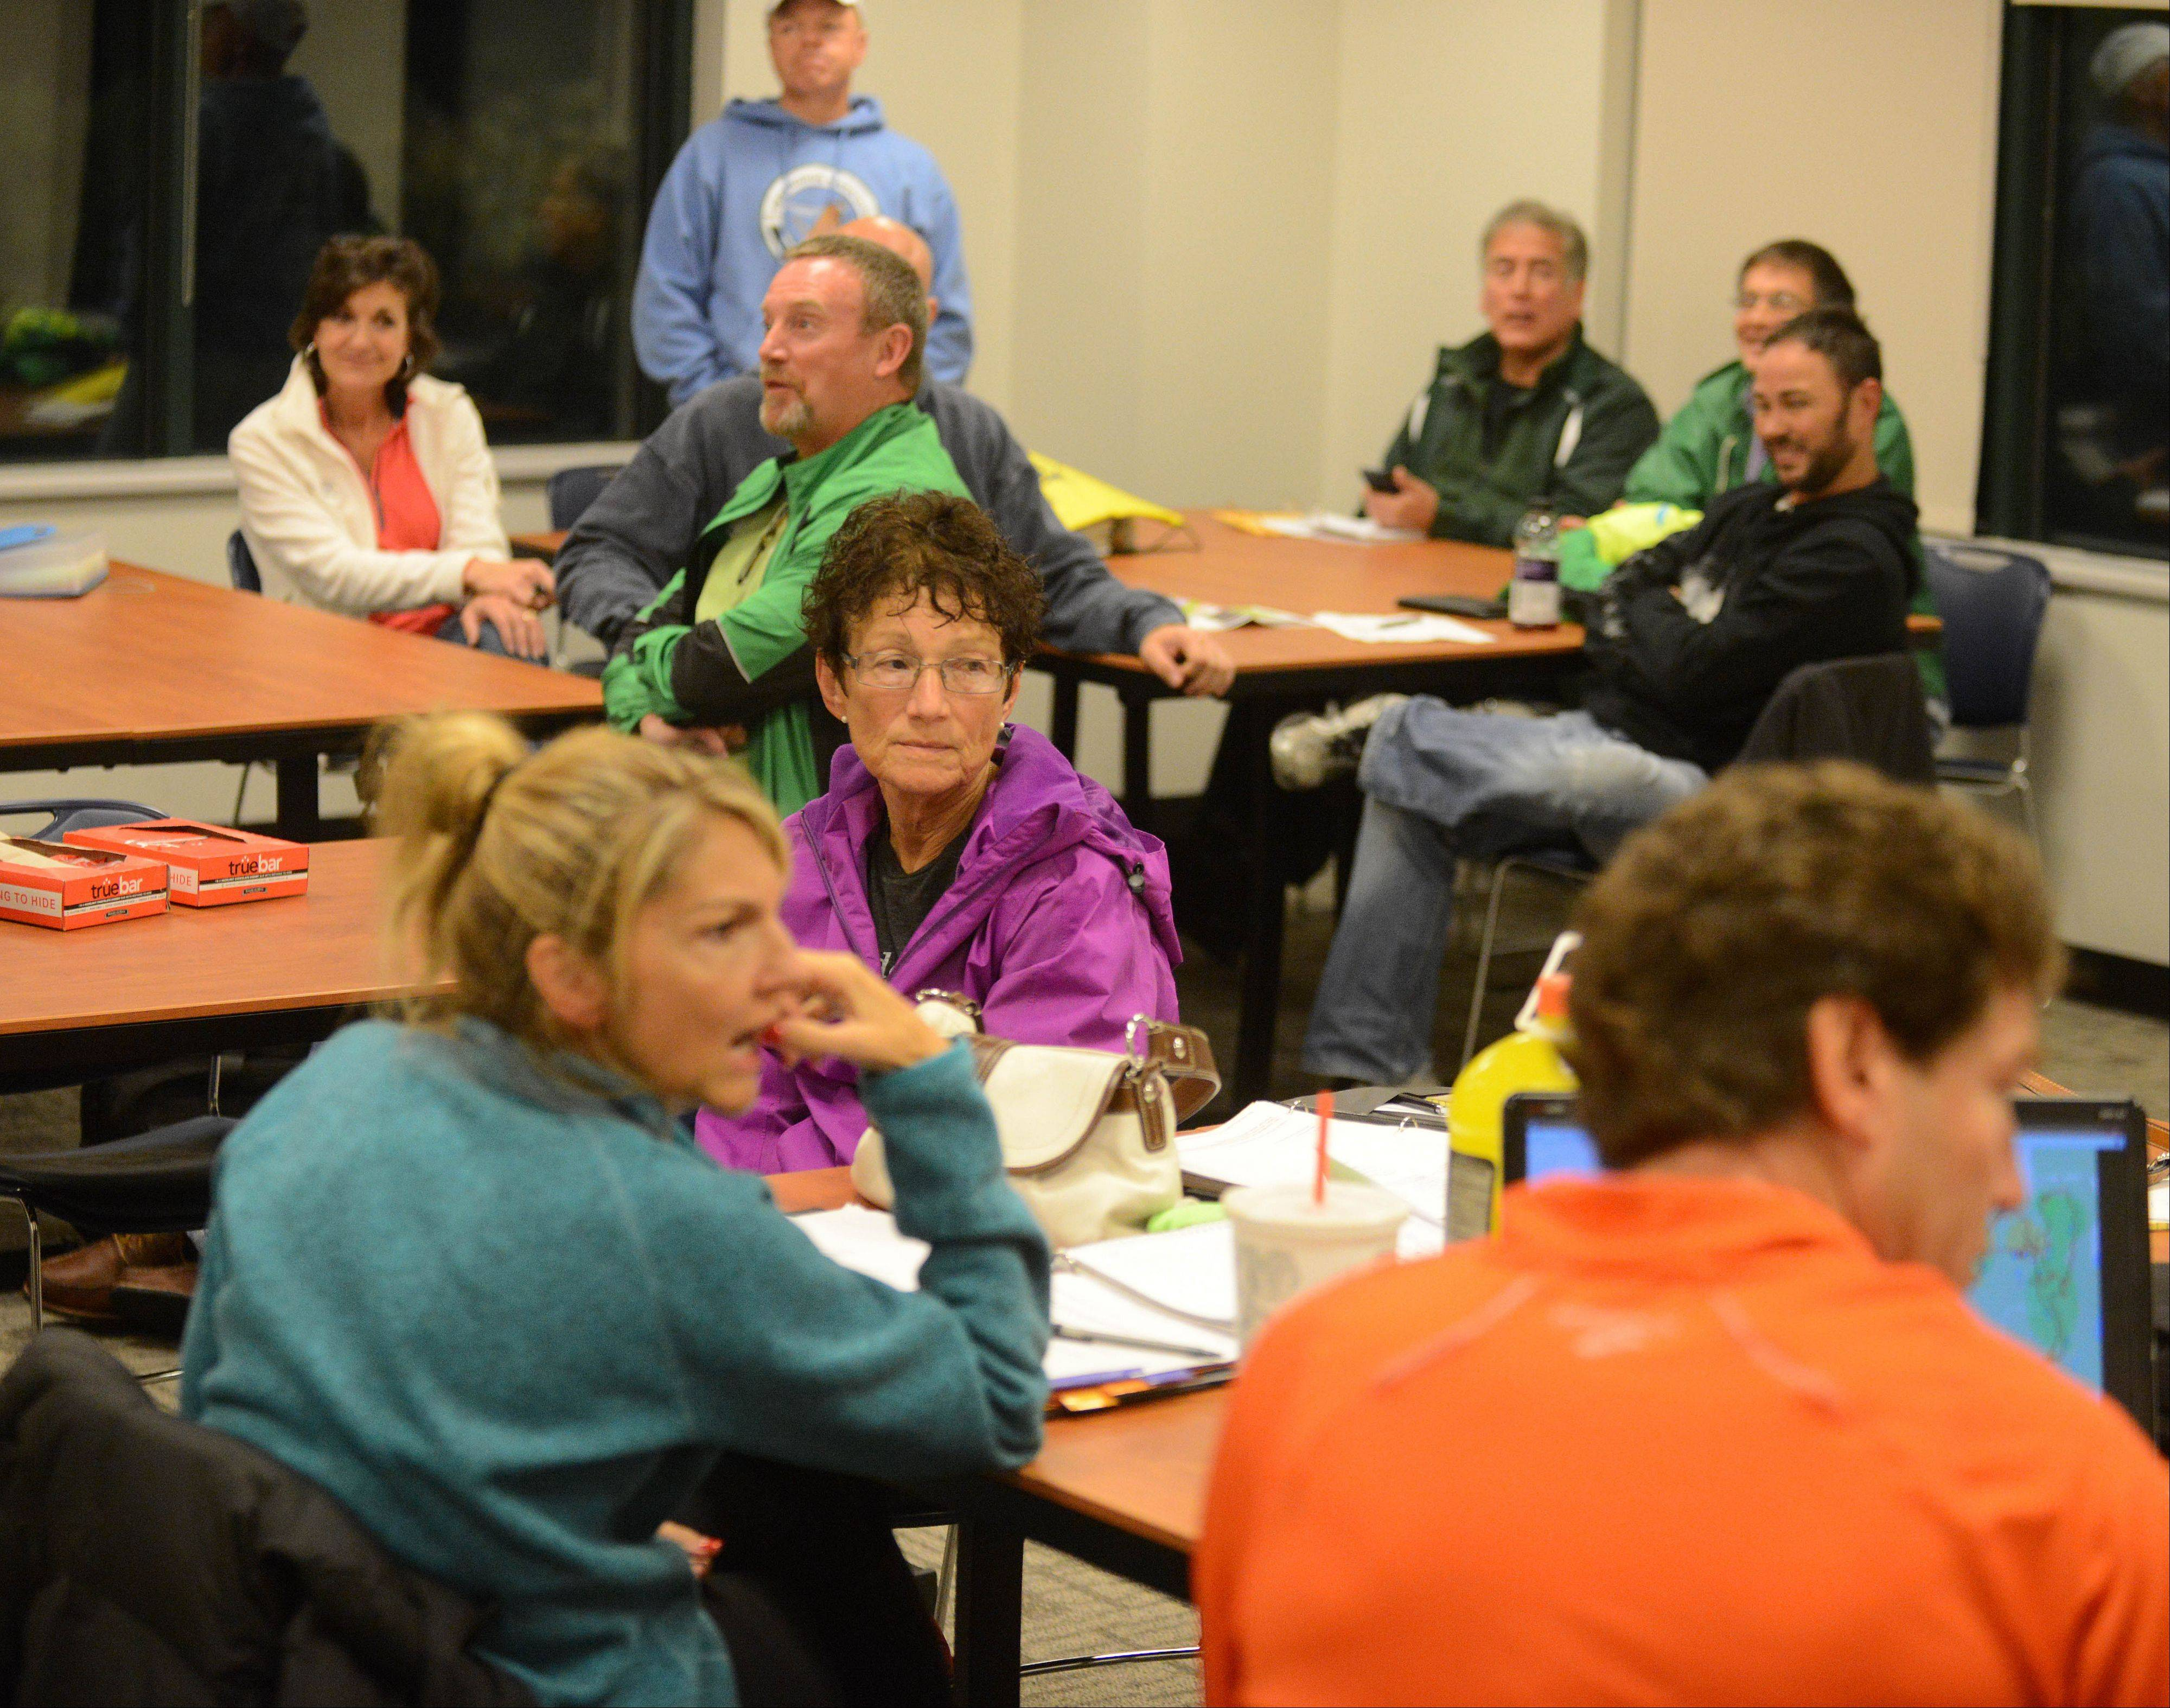 Some of the roughly 850 volunteers who will make the Edward Hospital Naperville Marathon and Half Marathon possible get a briefing from race directors during a meeting in October.